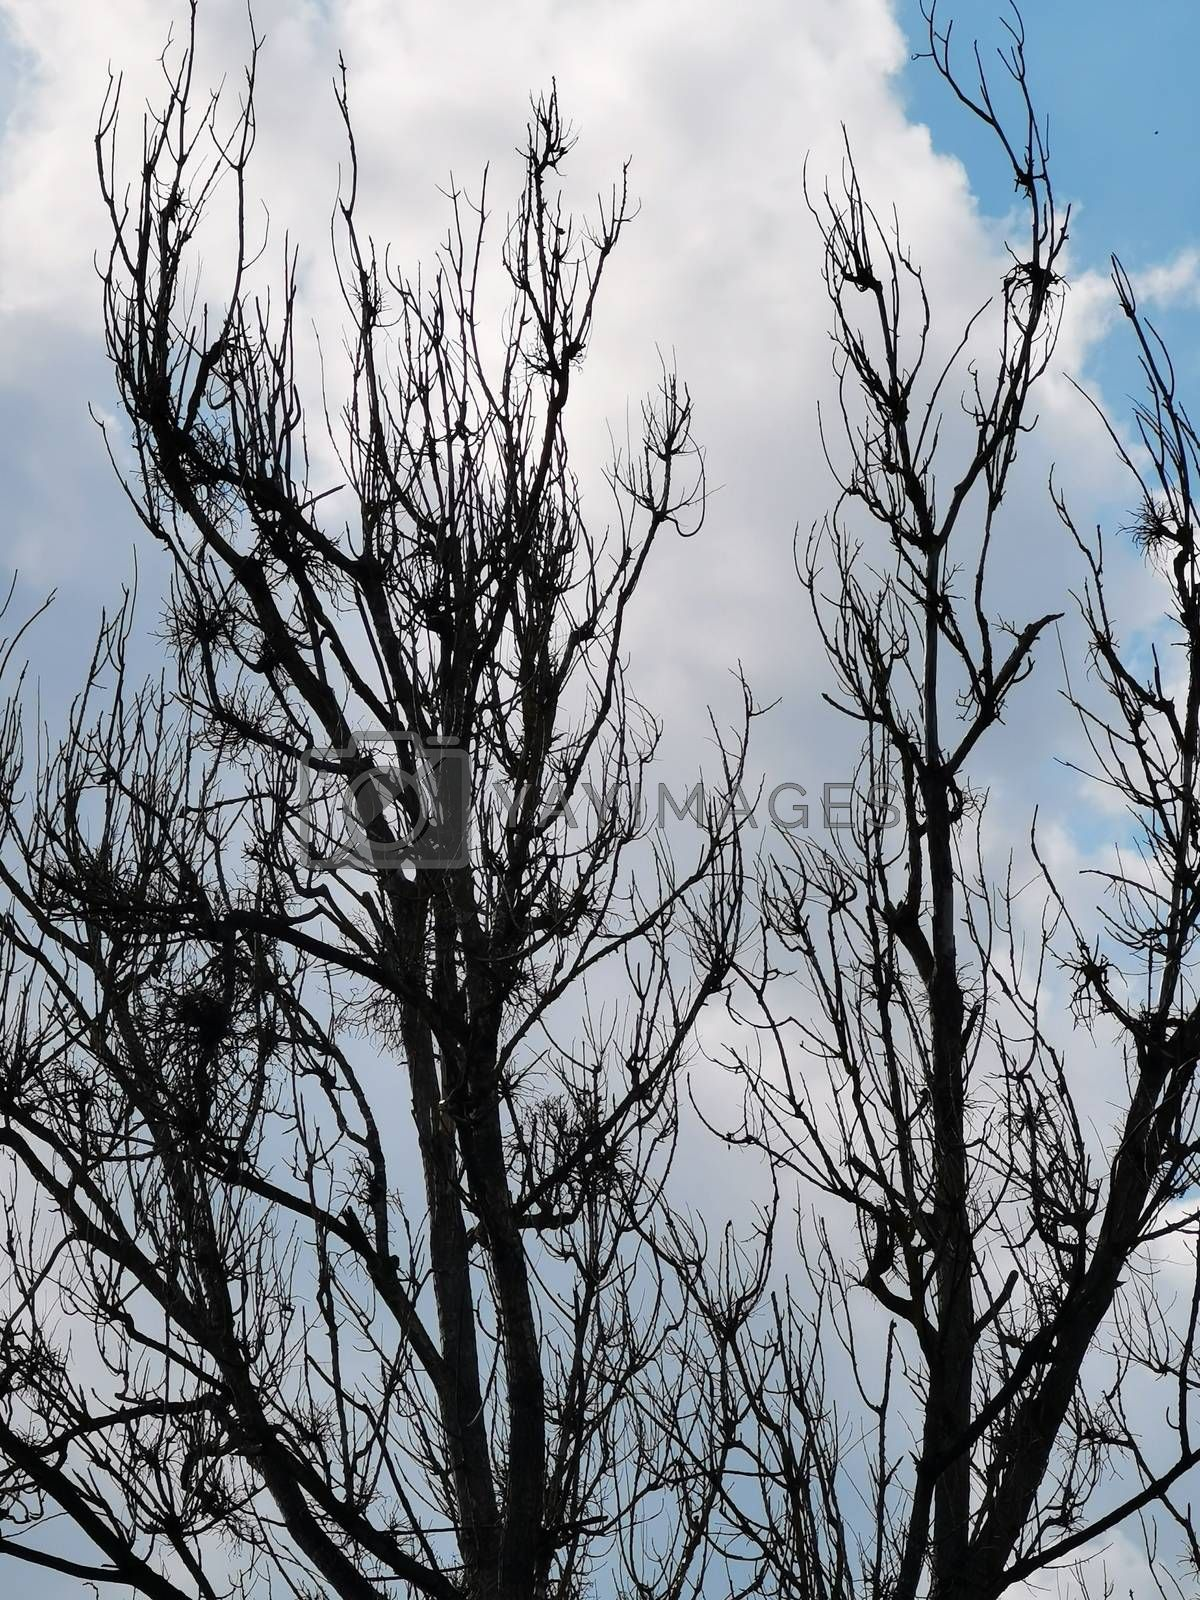 Royalty free image of Large branches of trees in the Aggtelek National Park by balage941